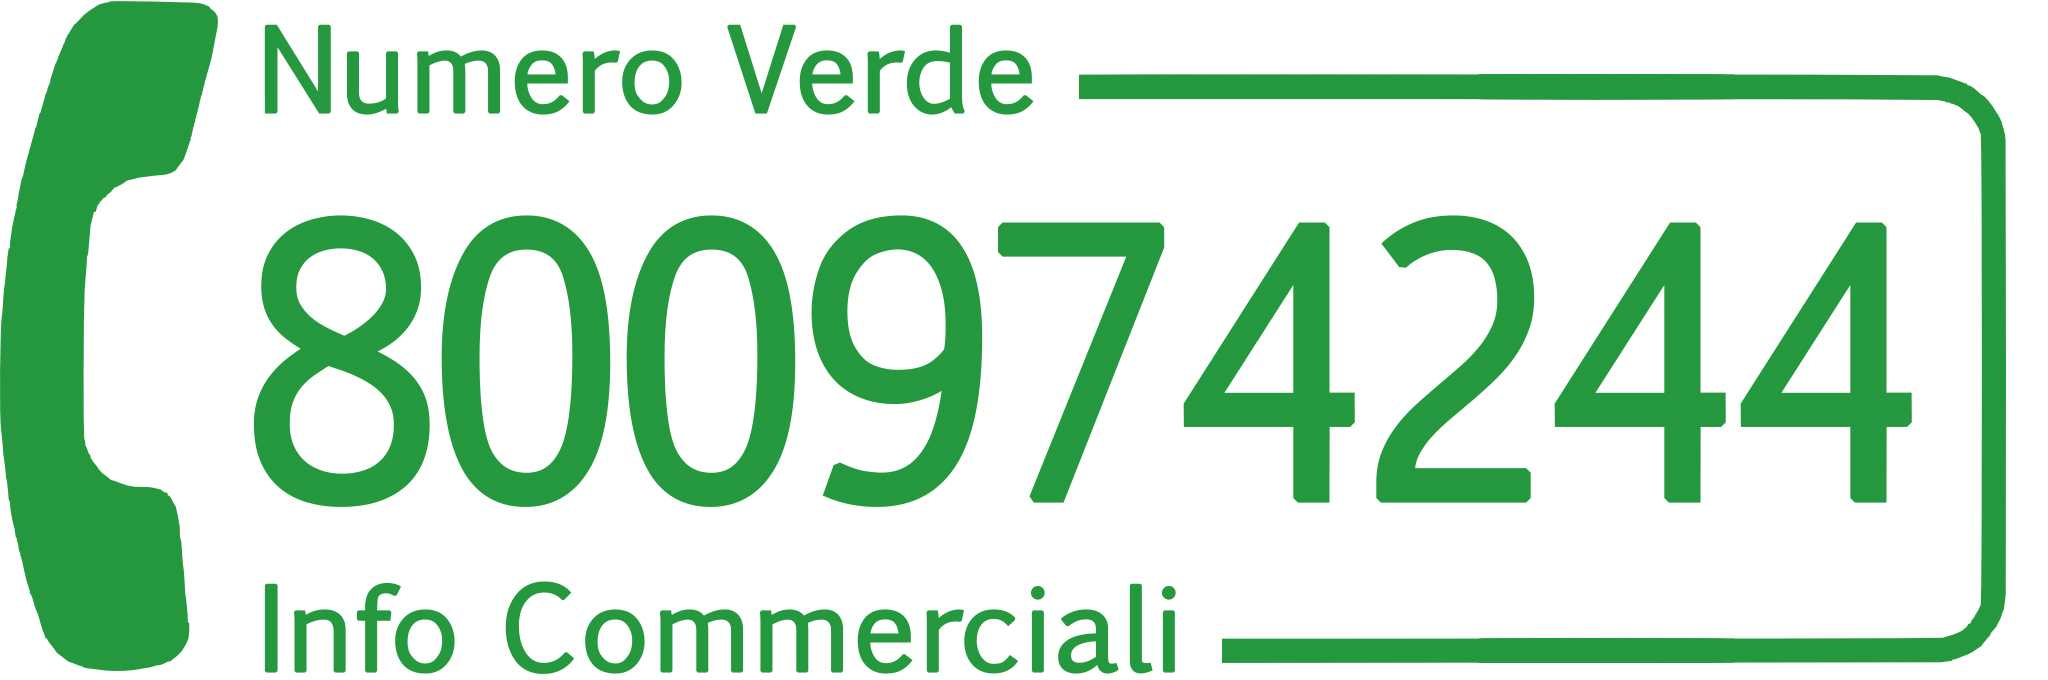 numero-verde